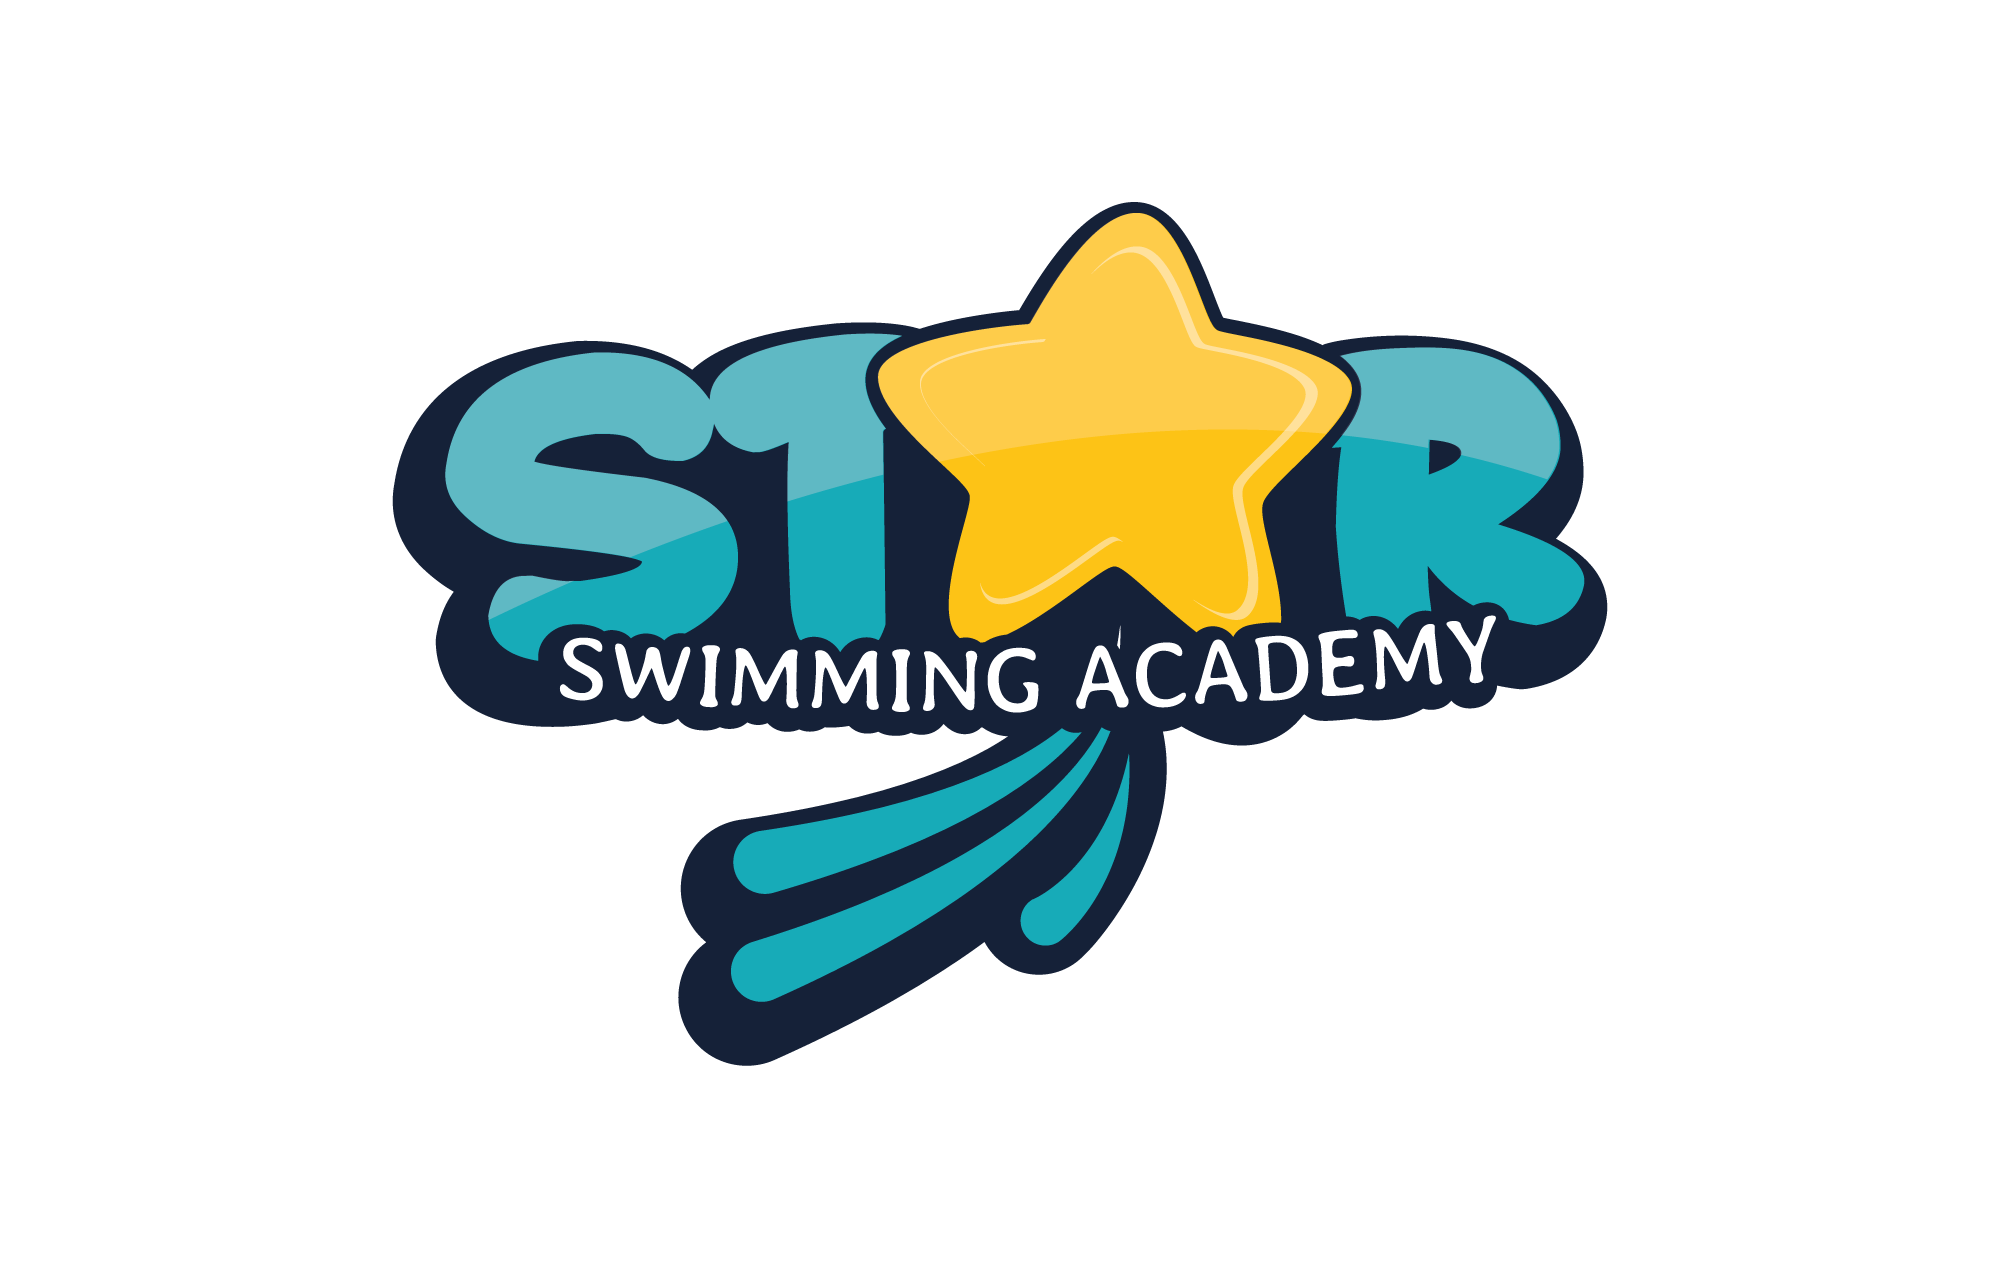 Star Swimming Logo with White Outline